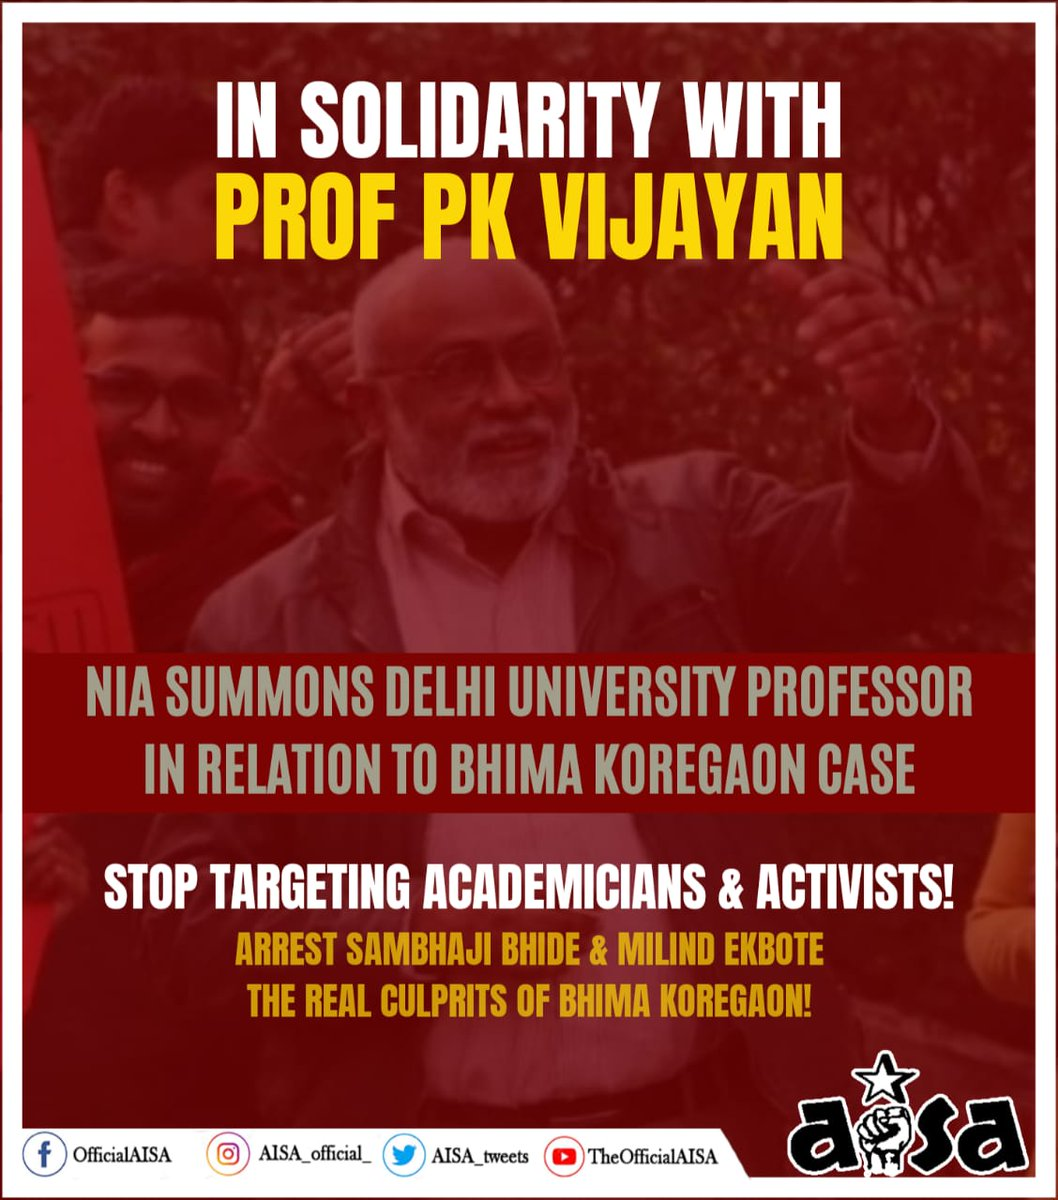 Stand in Solidarity with Prof. #PKVijayan! Hands Off Our Professors! Prof. PK Vijayan is an eminent scholar and one of the foremost progressive voicesh of DU. He have relentlessly stood with the students and larger democratic movement. #BhimaKoregaon #BhimaKoregaonCase